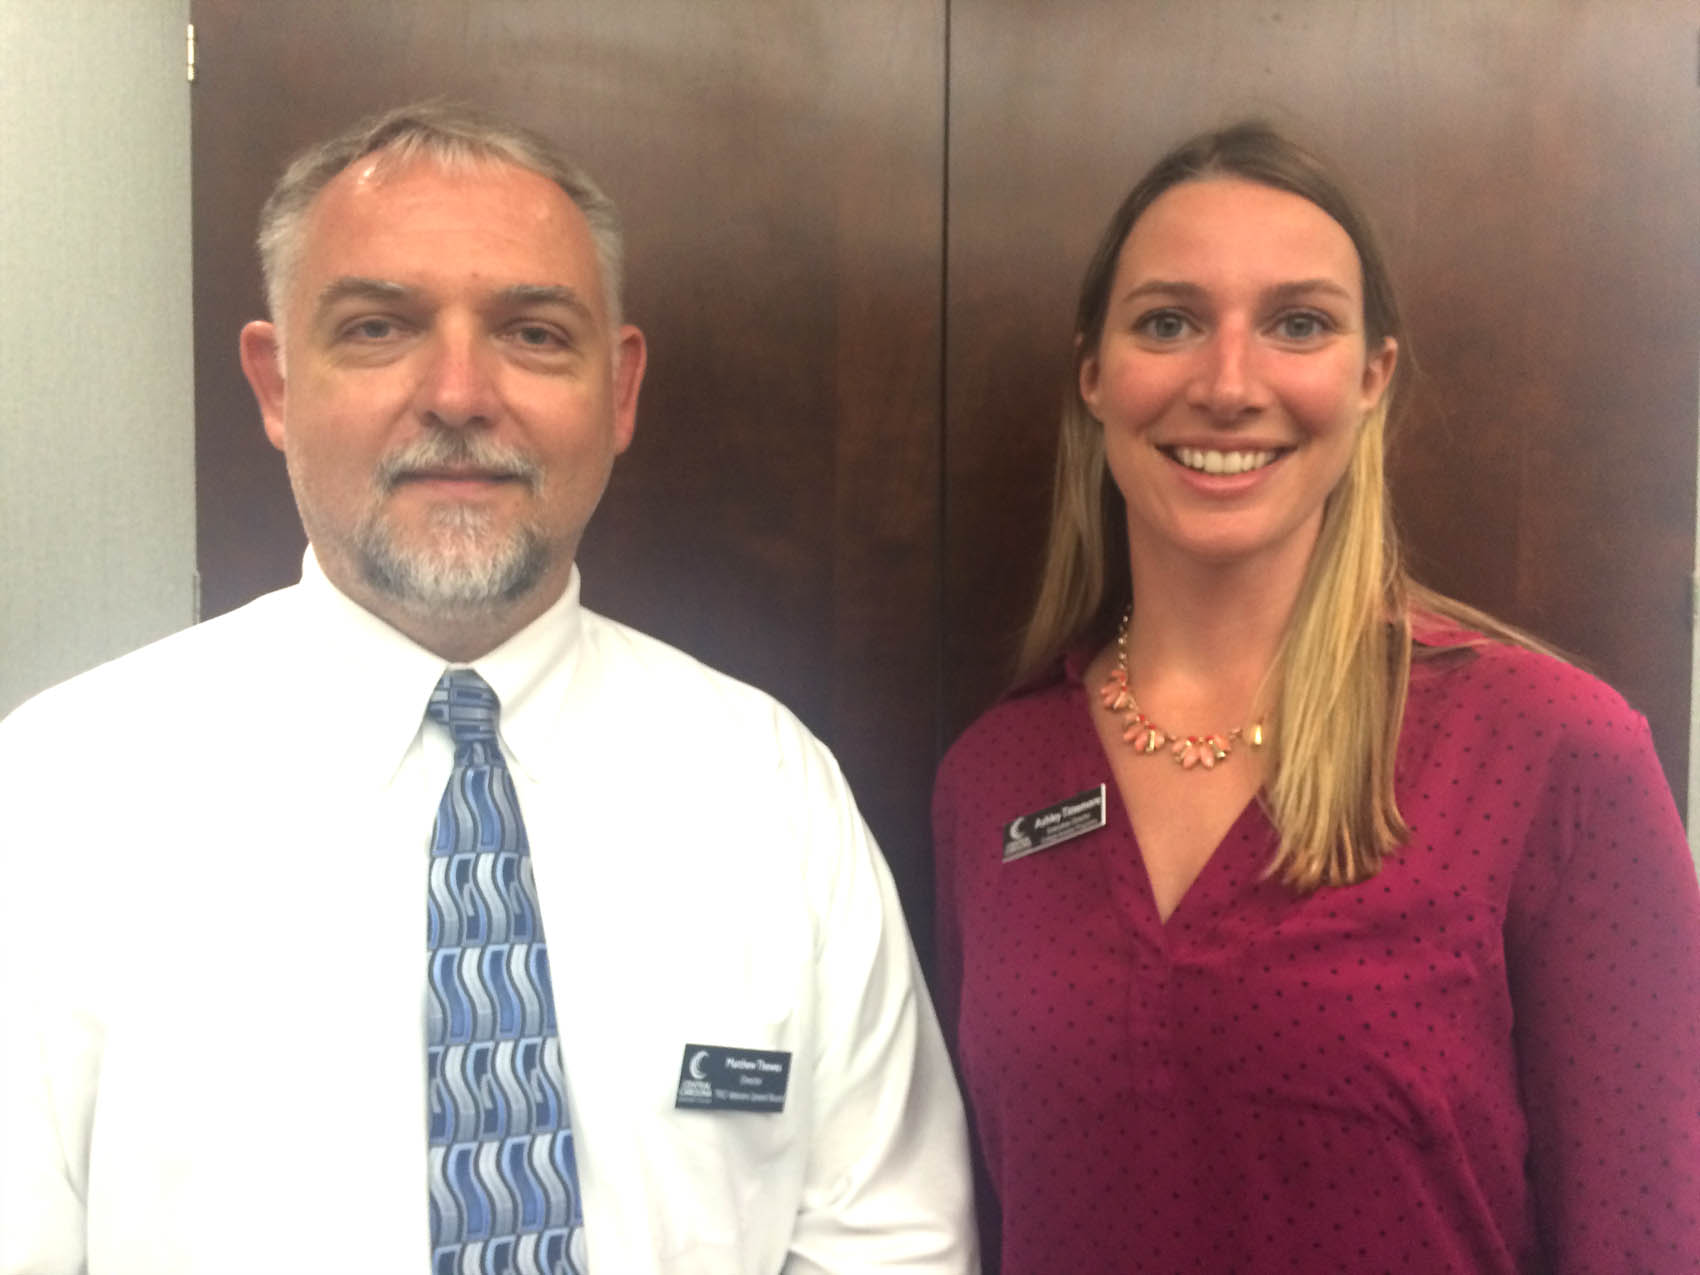 Click to enlarge,  Matt Thewes (left), Central Carolina Community College Veterans Upward Bound Director, and Ashley Tittemore, CCCC Executive Director of College Access Programs are ready to assist veterans through the Veterans Upward Bound program.